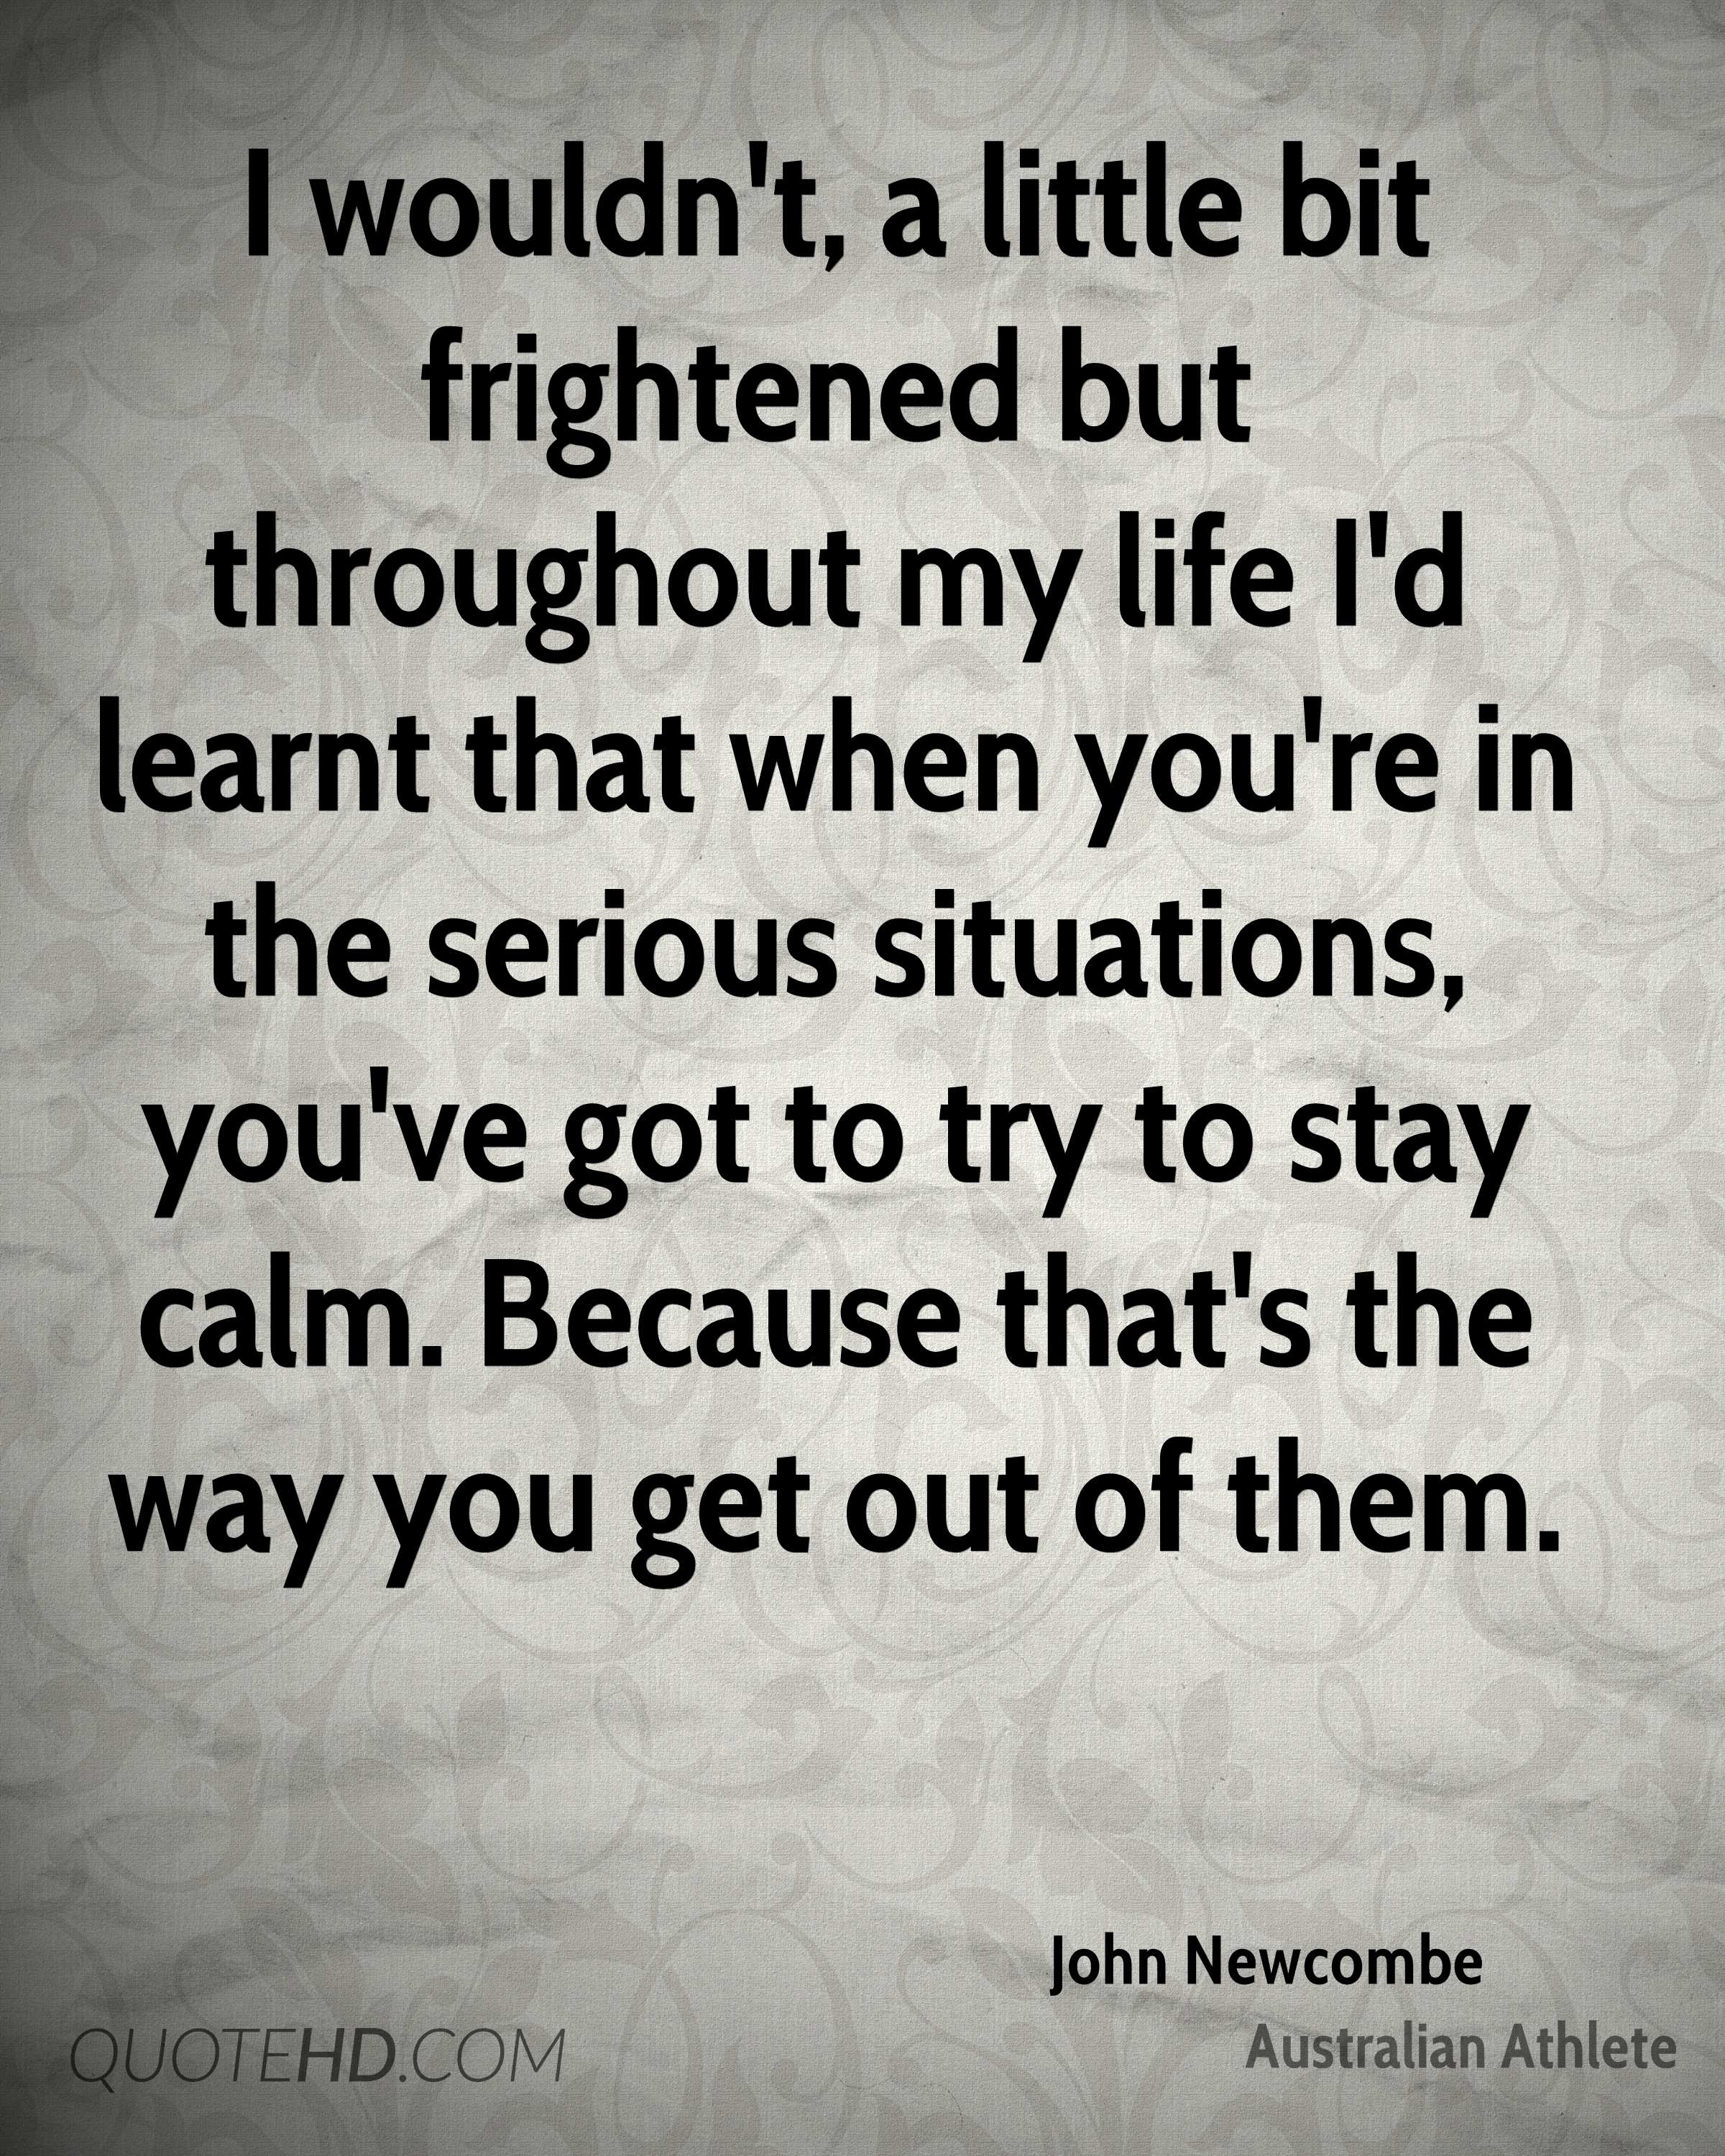 I wouldn't, a little bit frightened but throughout my life I'd learnt that when you're in the serious situations, you've got to try to stay calm. Because that's the way you get out of them.